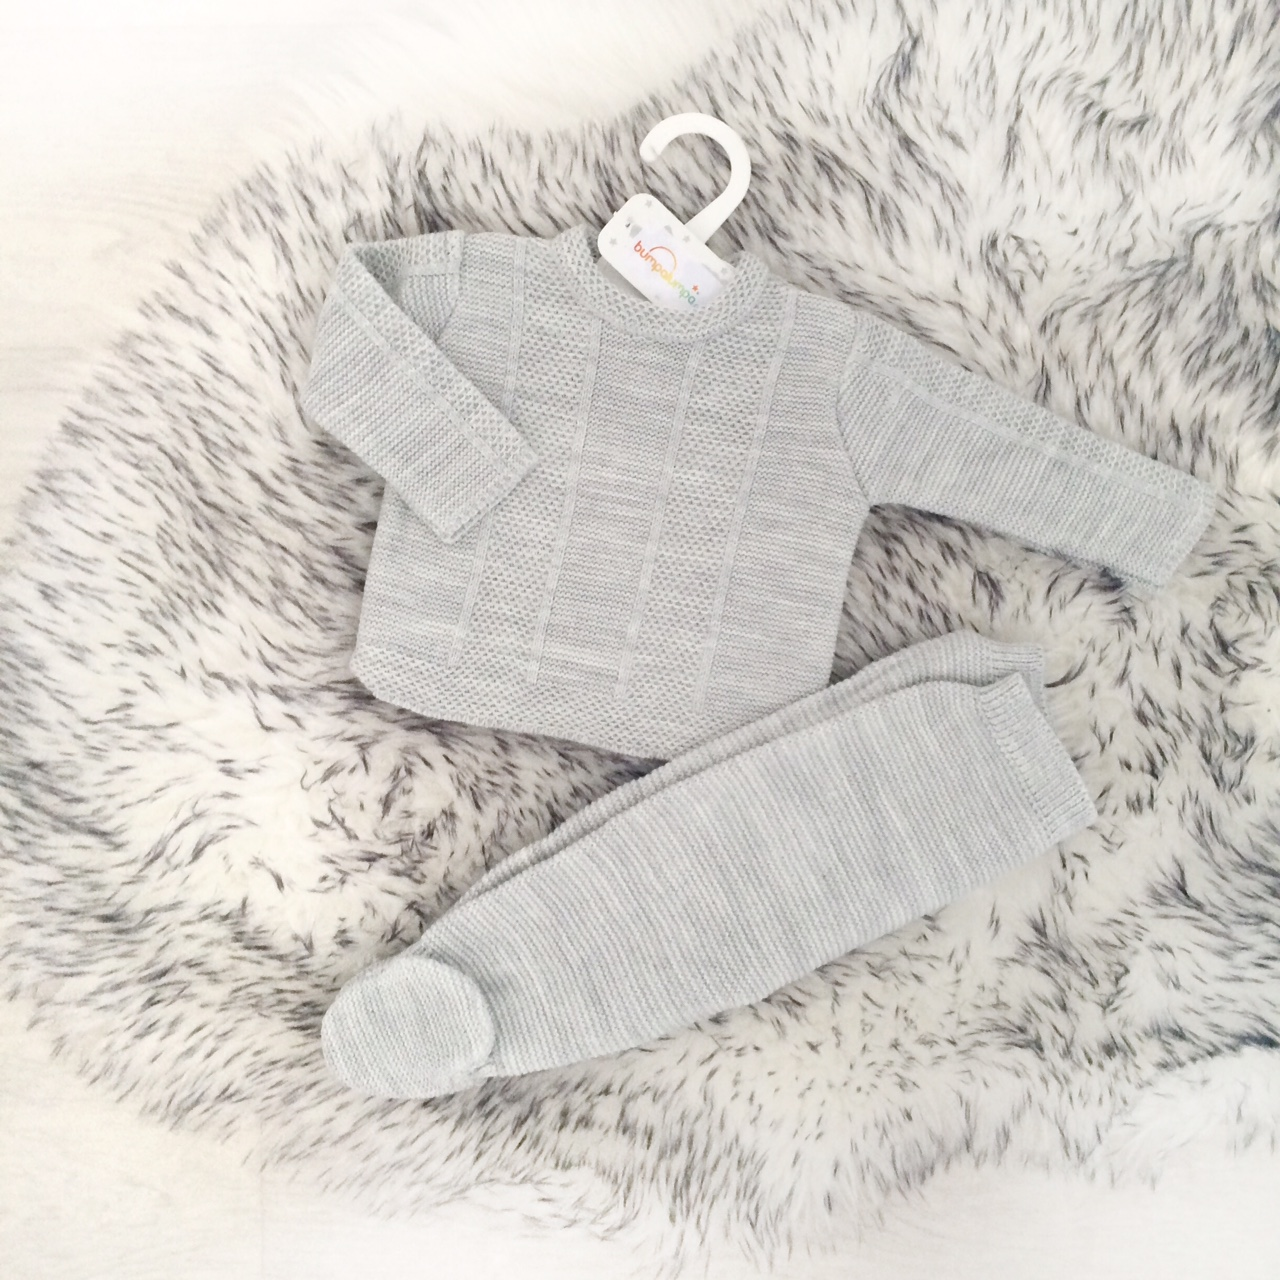 Grey Knitted Baby Outfit